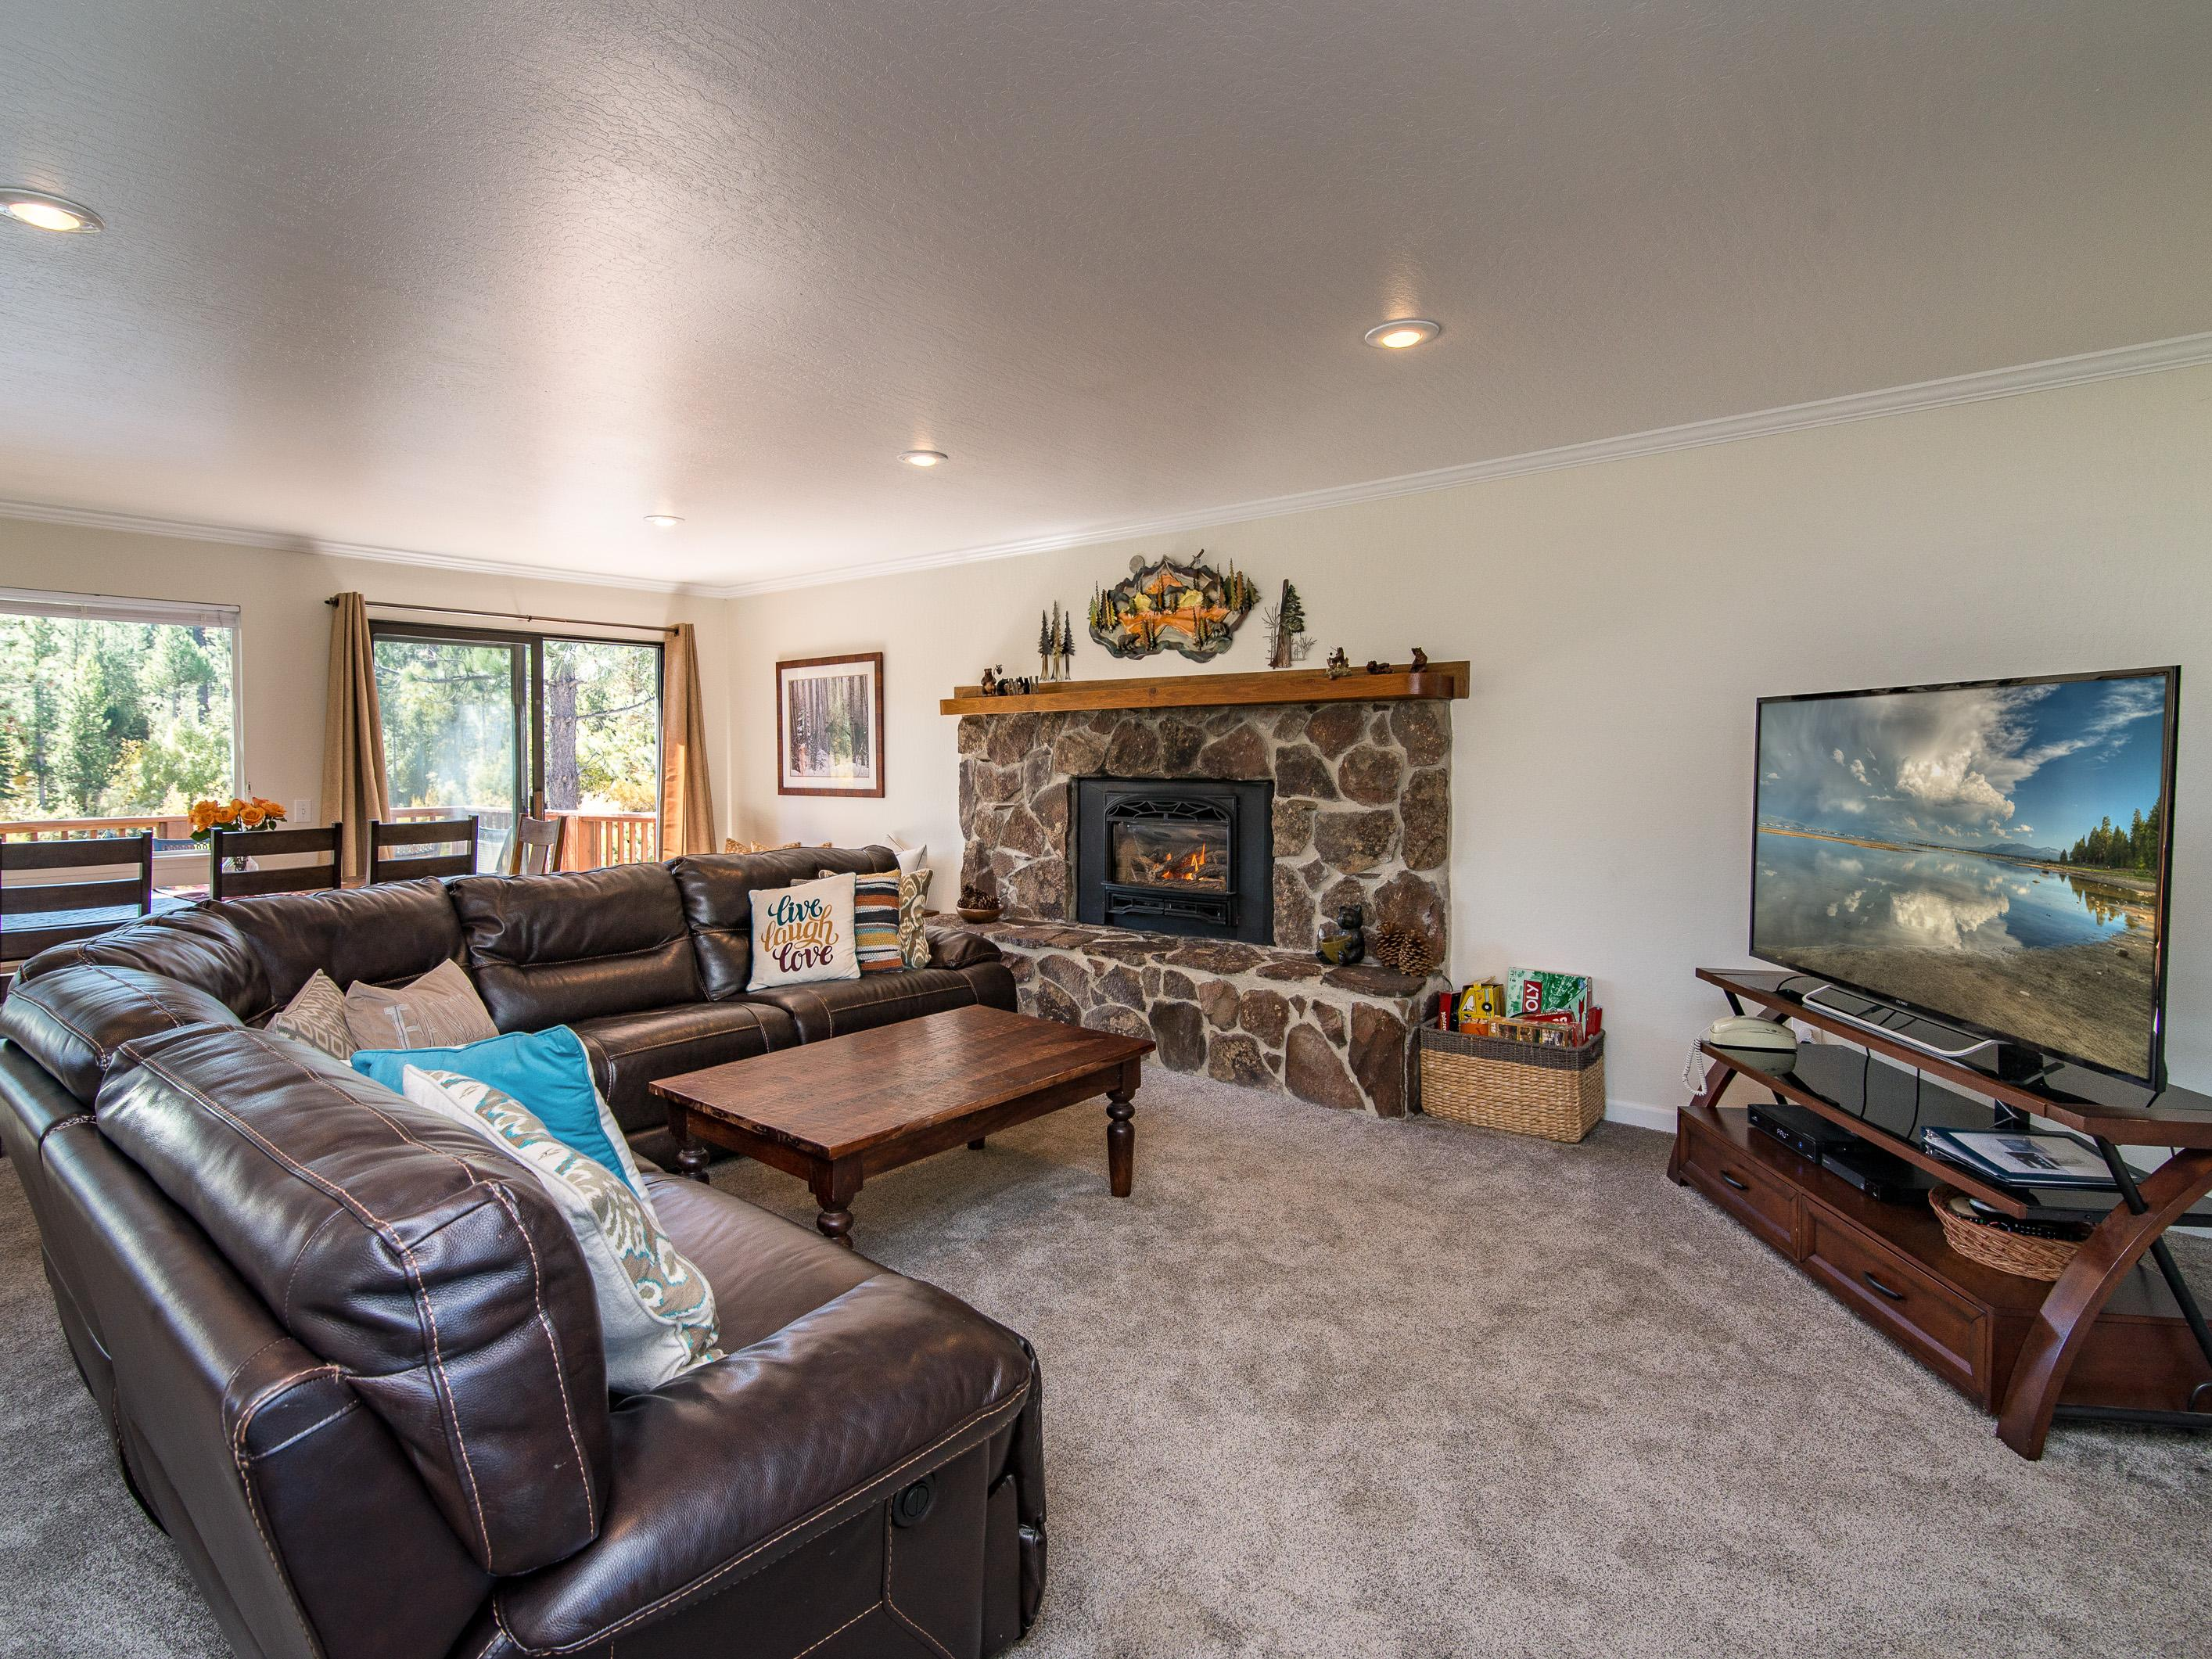 Gas fireplace with stone surround, plush leather seating, and extra-large flat screen TV in living room.